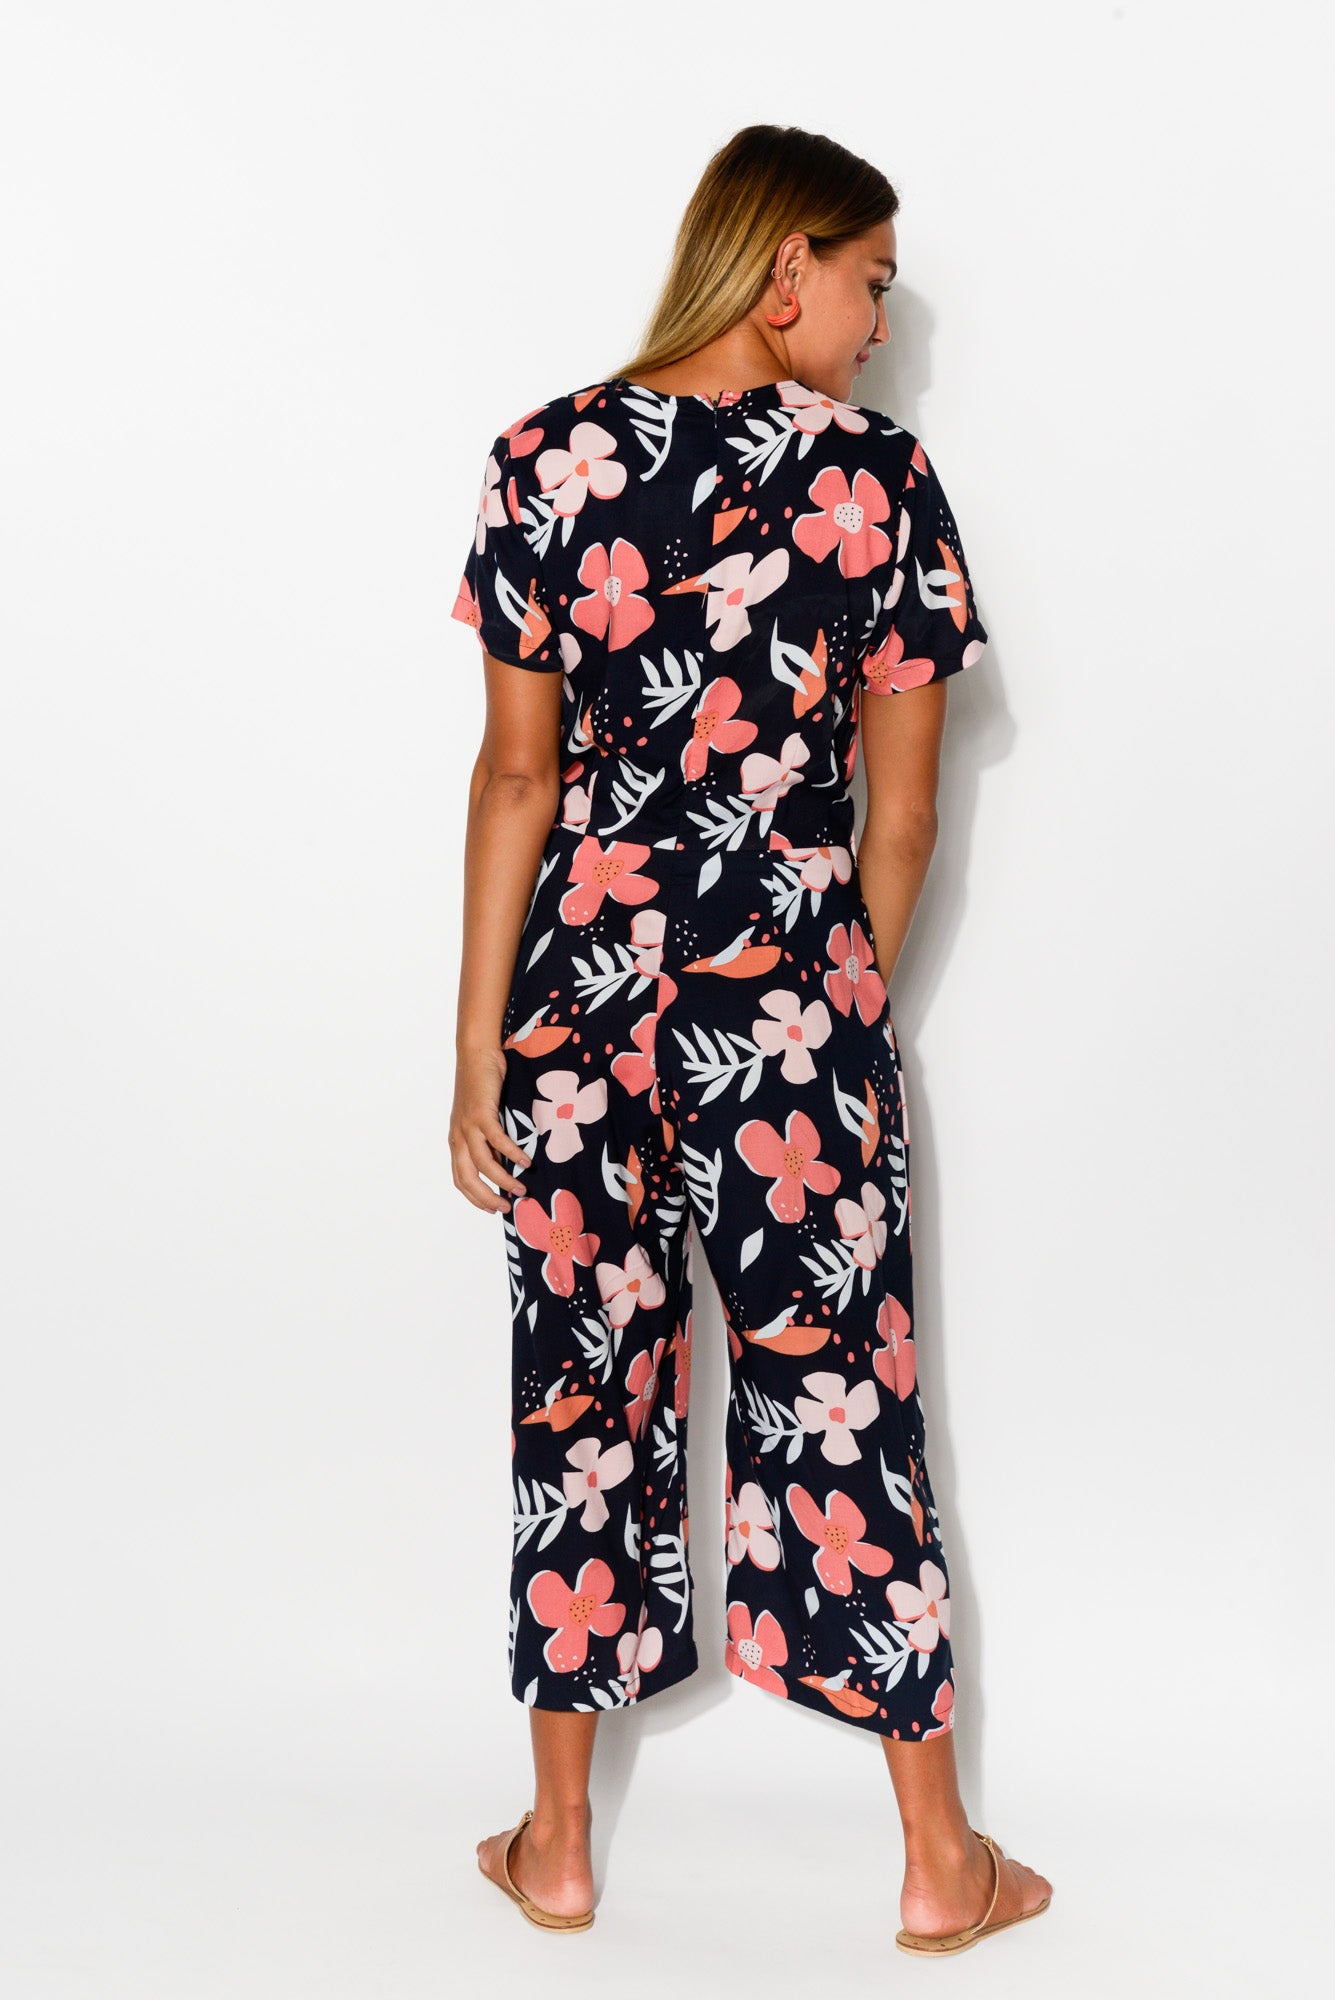 Bloom Navy Floral Jumpsuit - Blue Bungalow